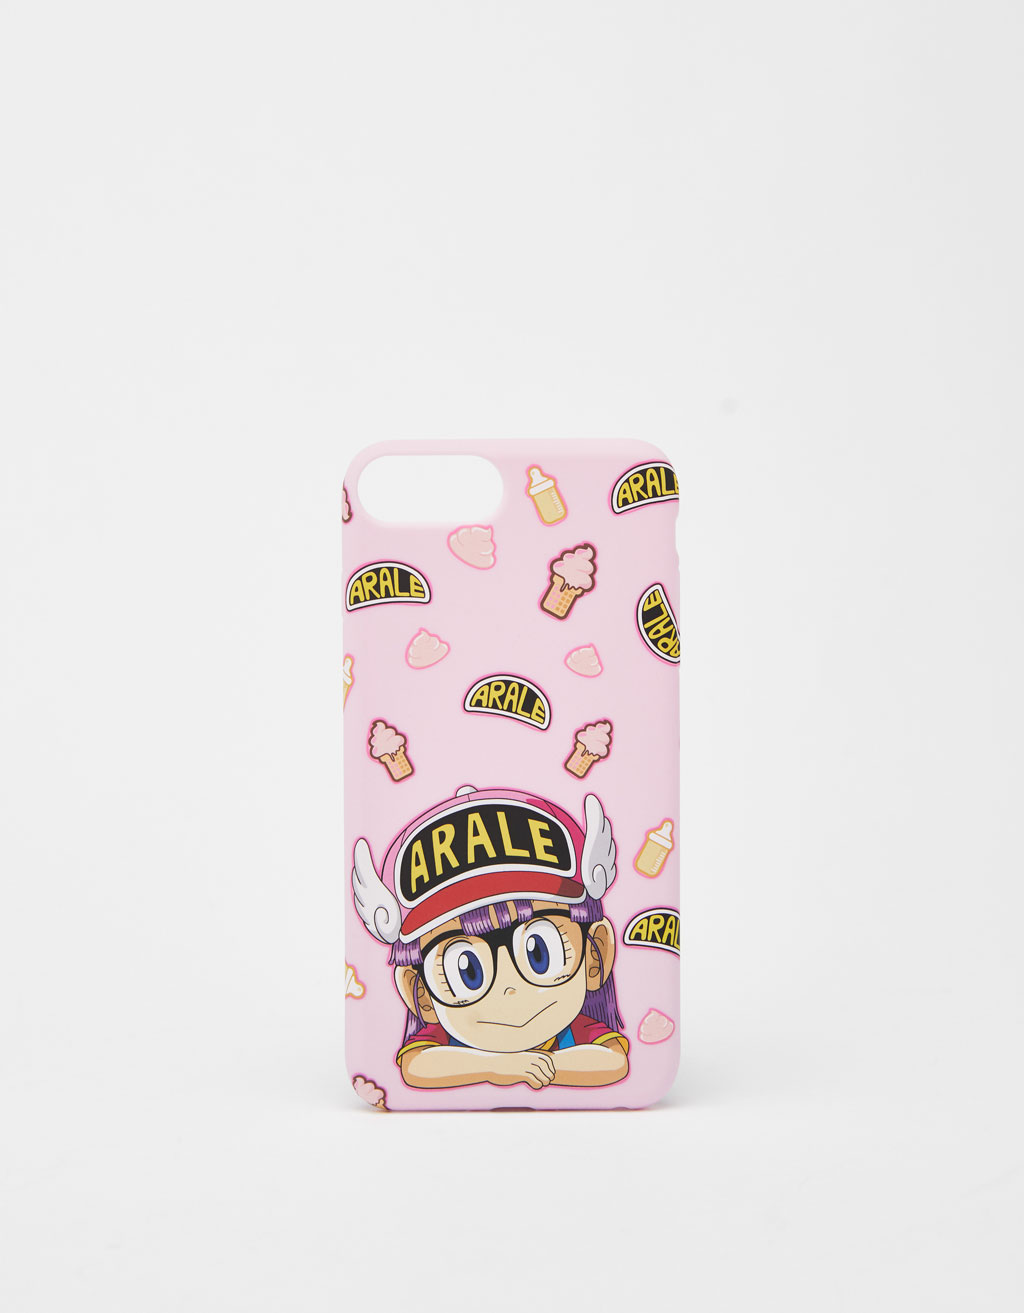 Arale iPhone 6 Plus/7 Plus/8 Plus case